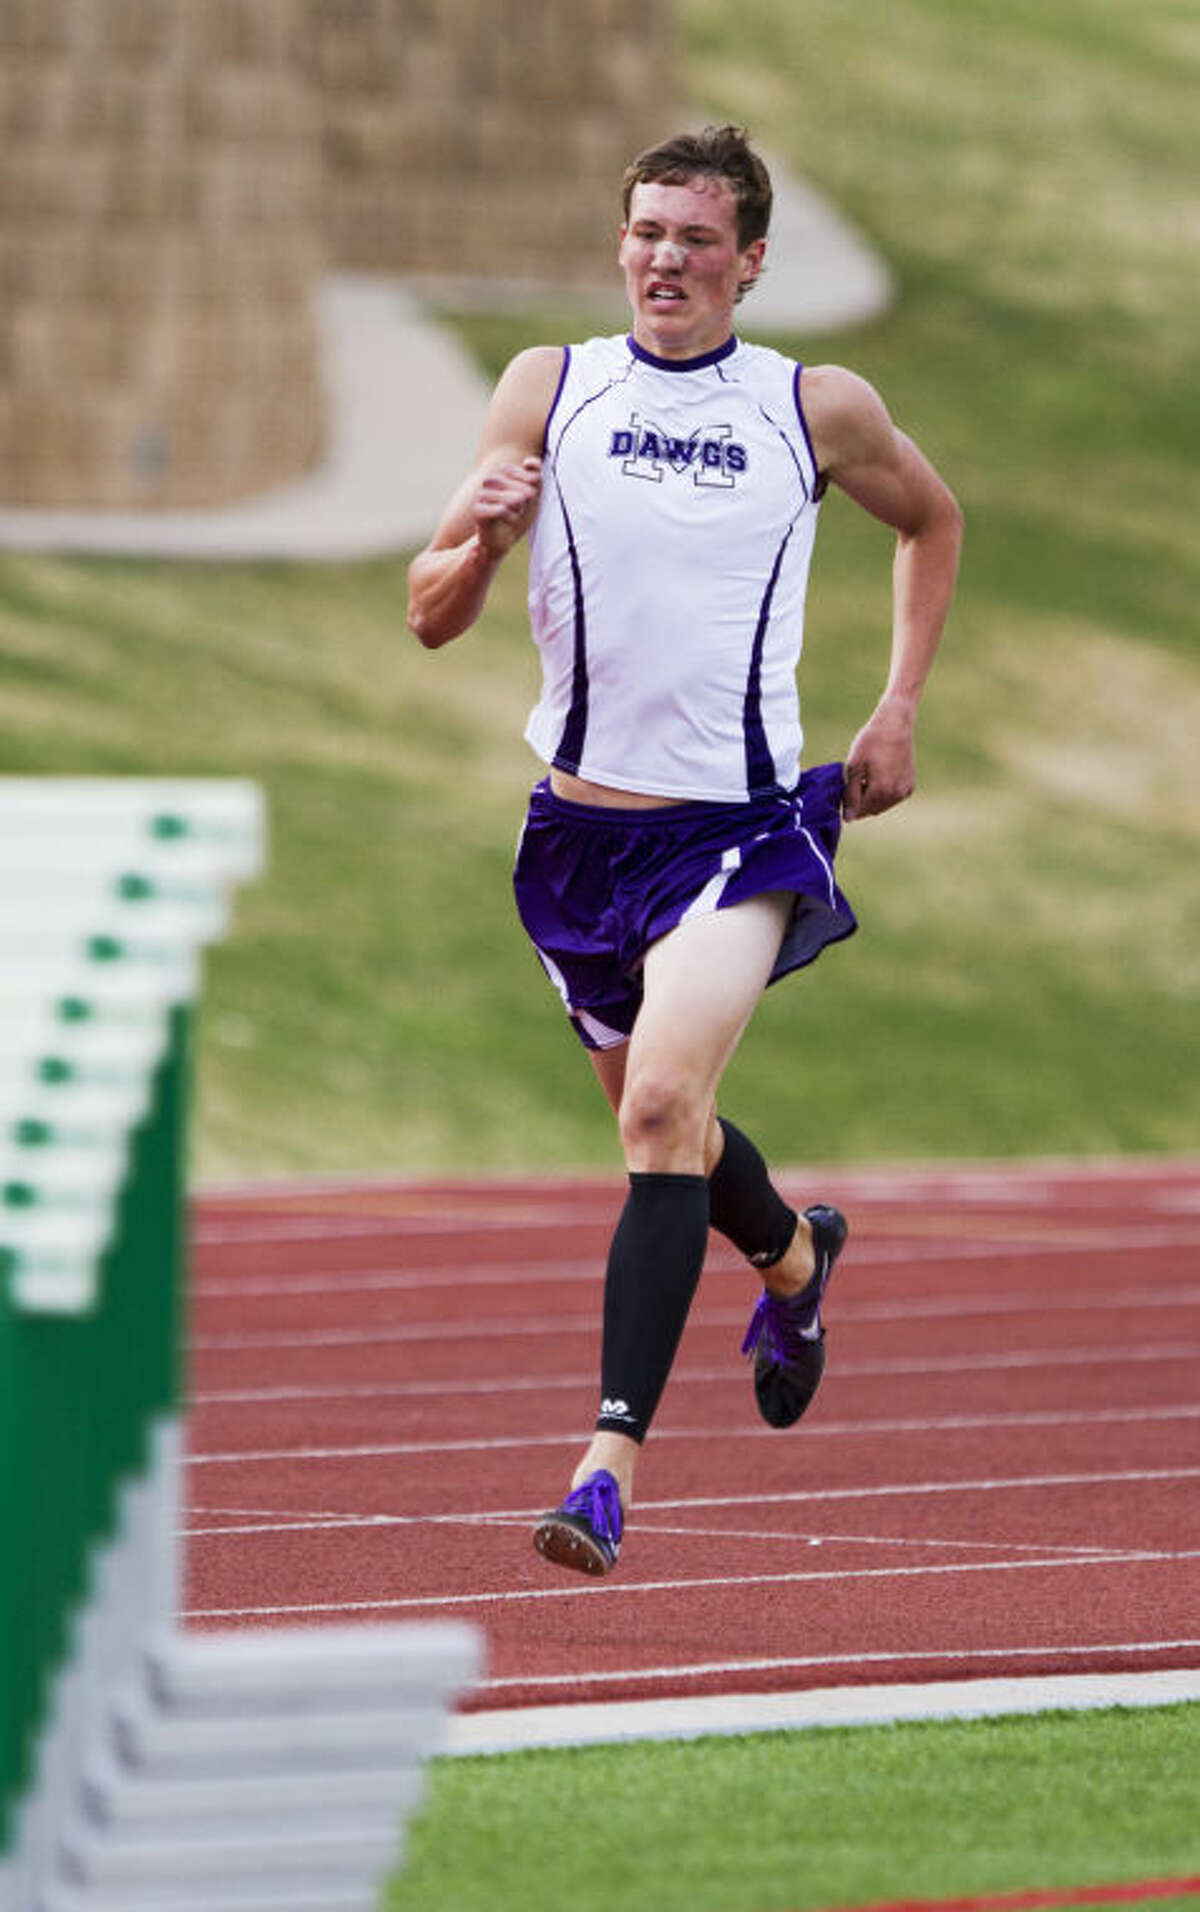 Midland's Austin Watson runs down the track during the 1,600 meter run during the UIL District 2-5A Track Championship April 11 at Lowrey Field in Lubbock. Watson's 4:32.97 time placed him second in the finals.